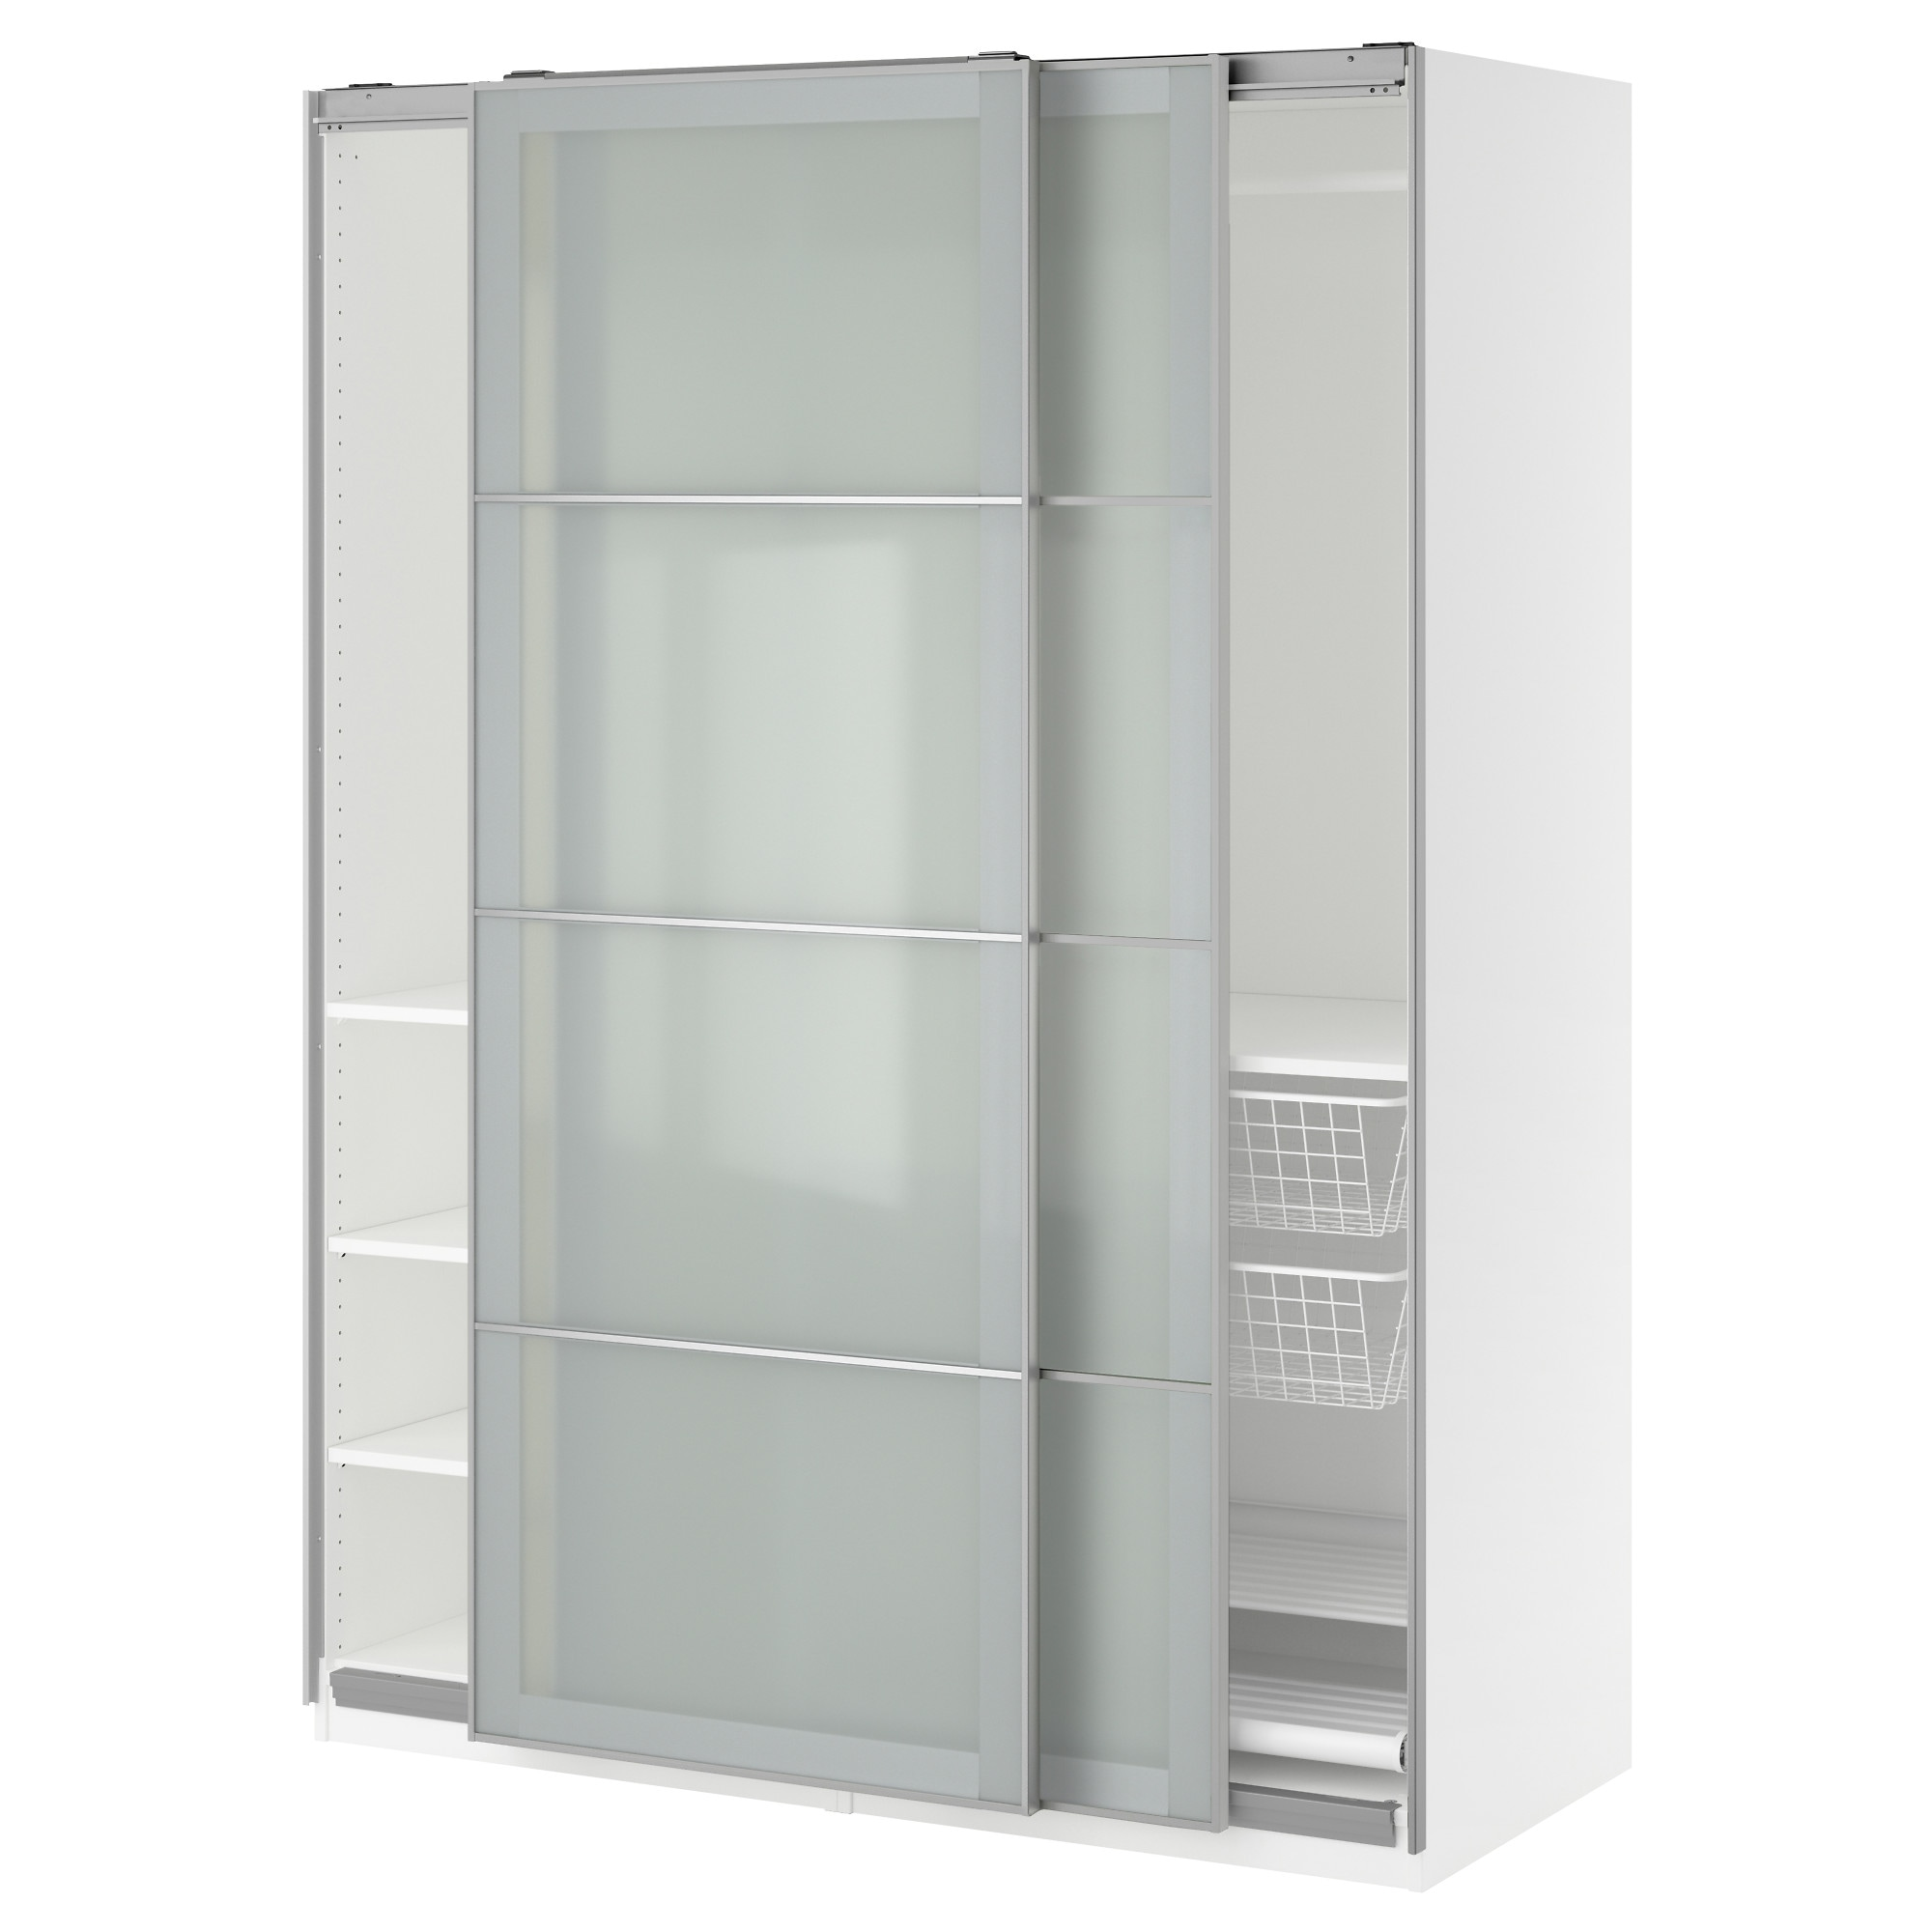 Pax system   combinations with doors   ikea